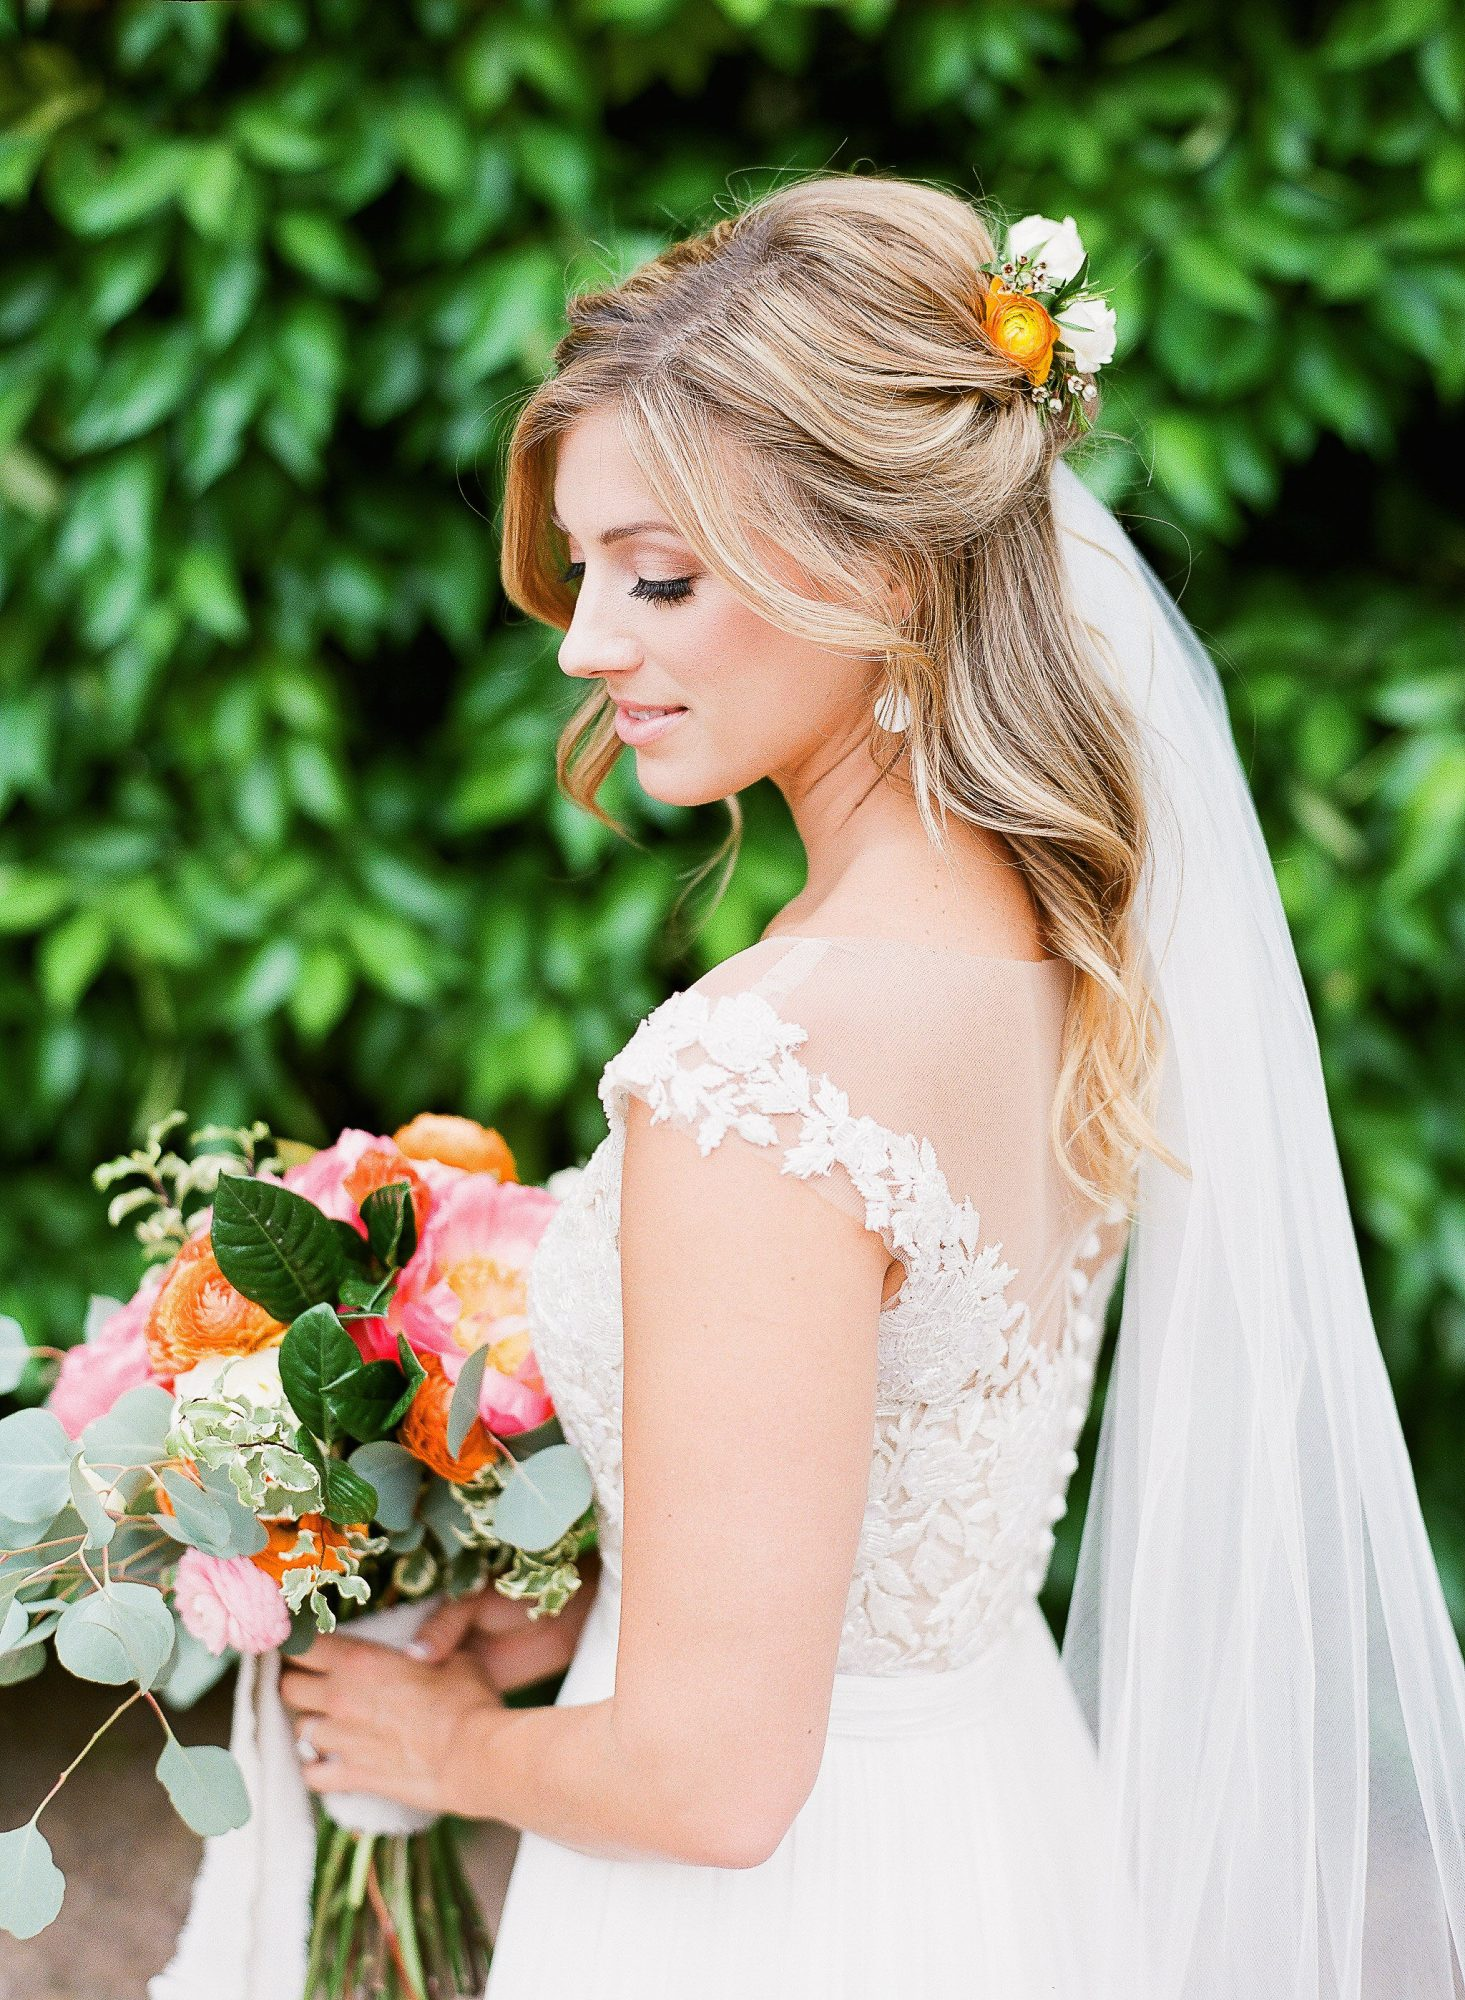 aubrey austin wedding bride hair